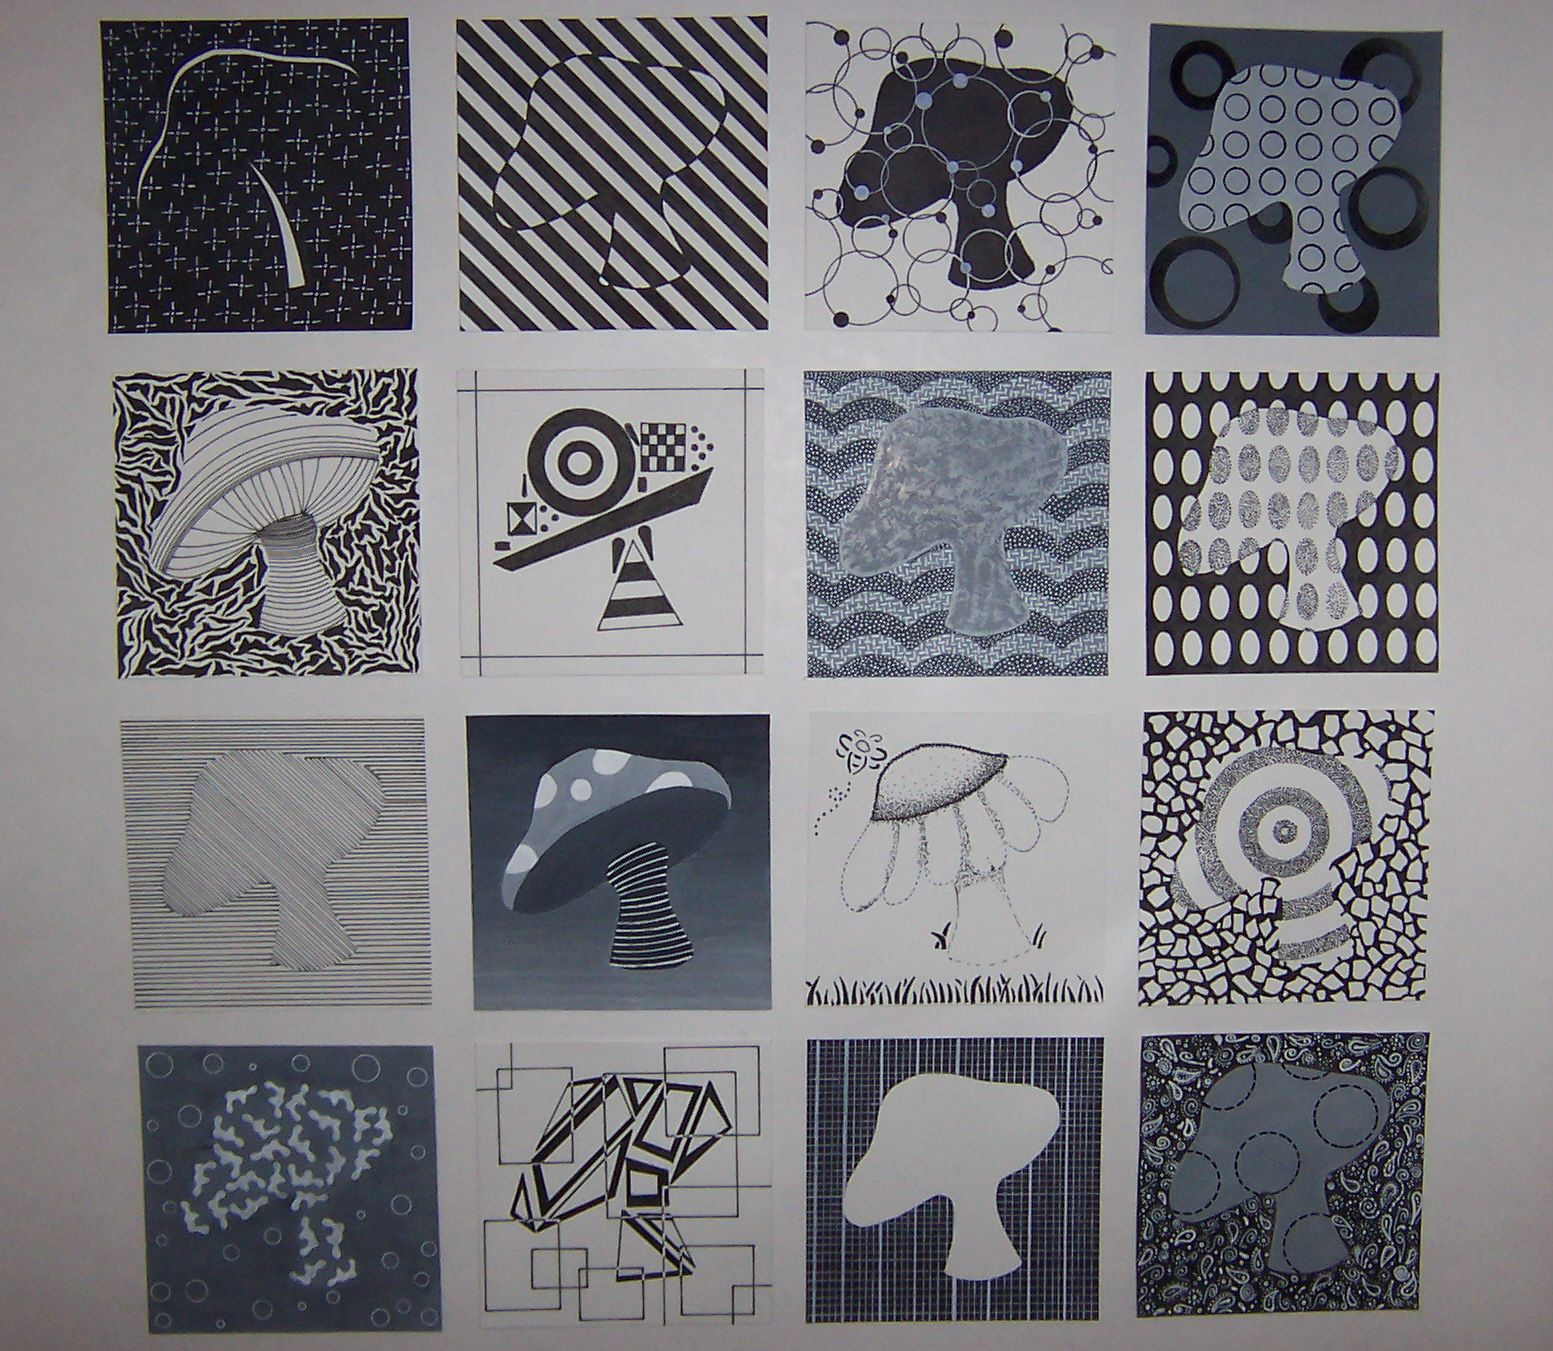 16 Squares From College Basic Of Design Class Displaying All Of The Elements Amp Principles Of